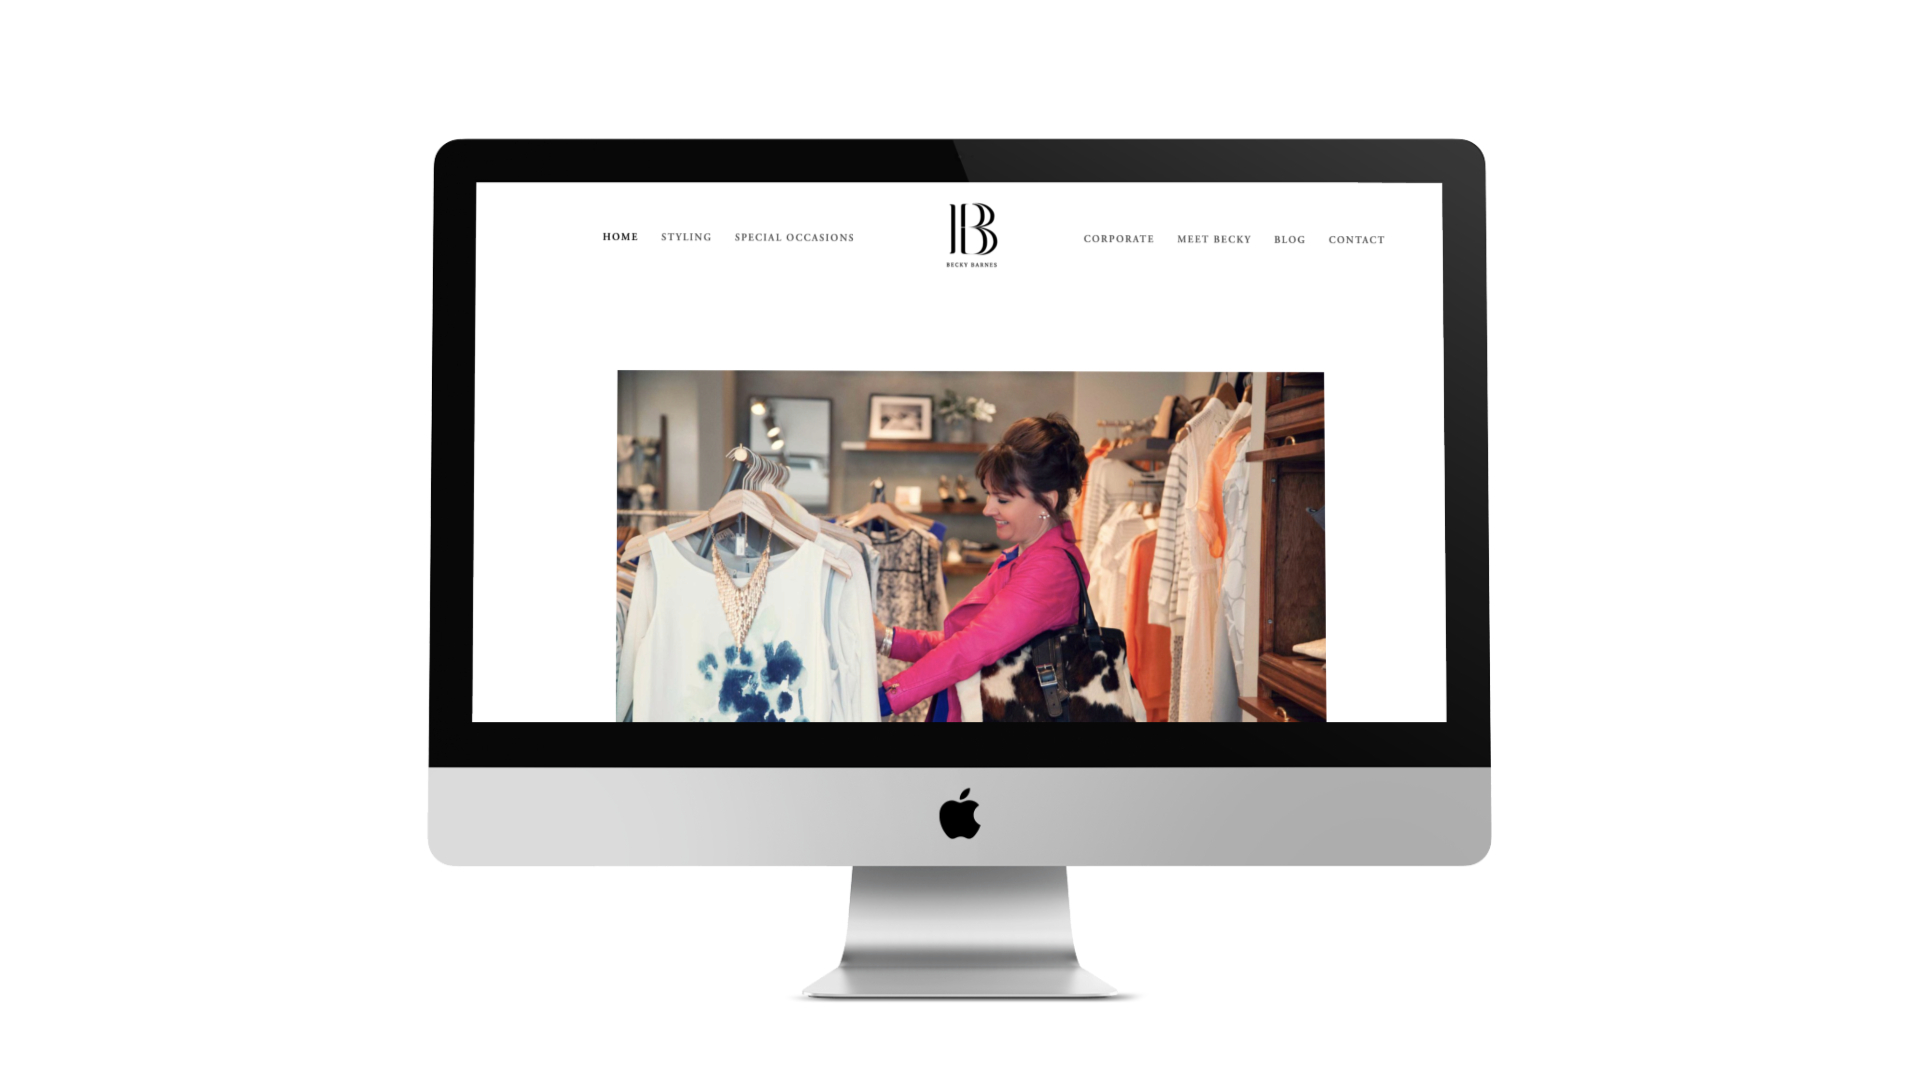 Web Design in Bristol for Becky Barnes by Visuable